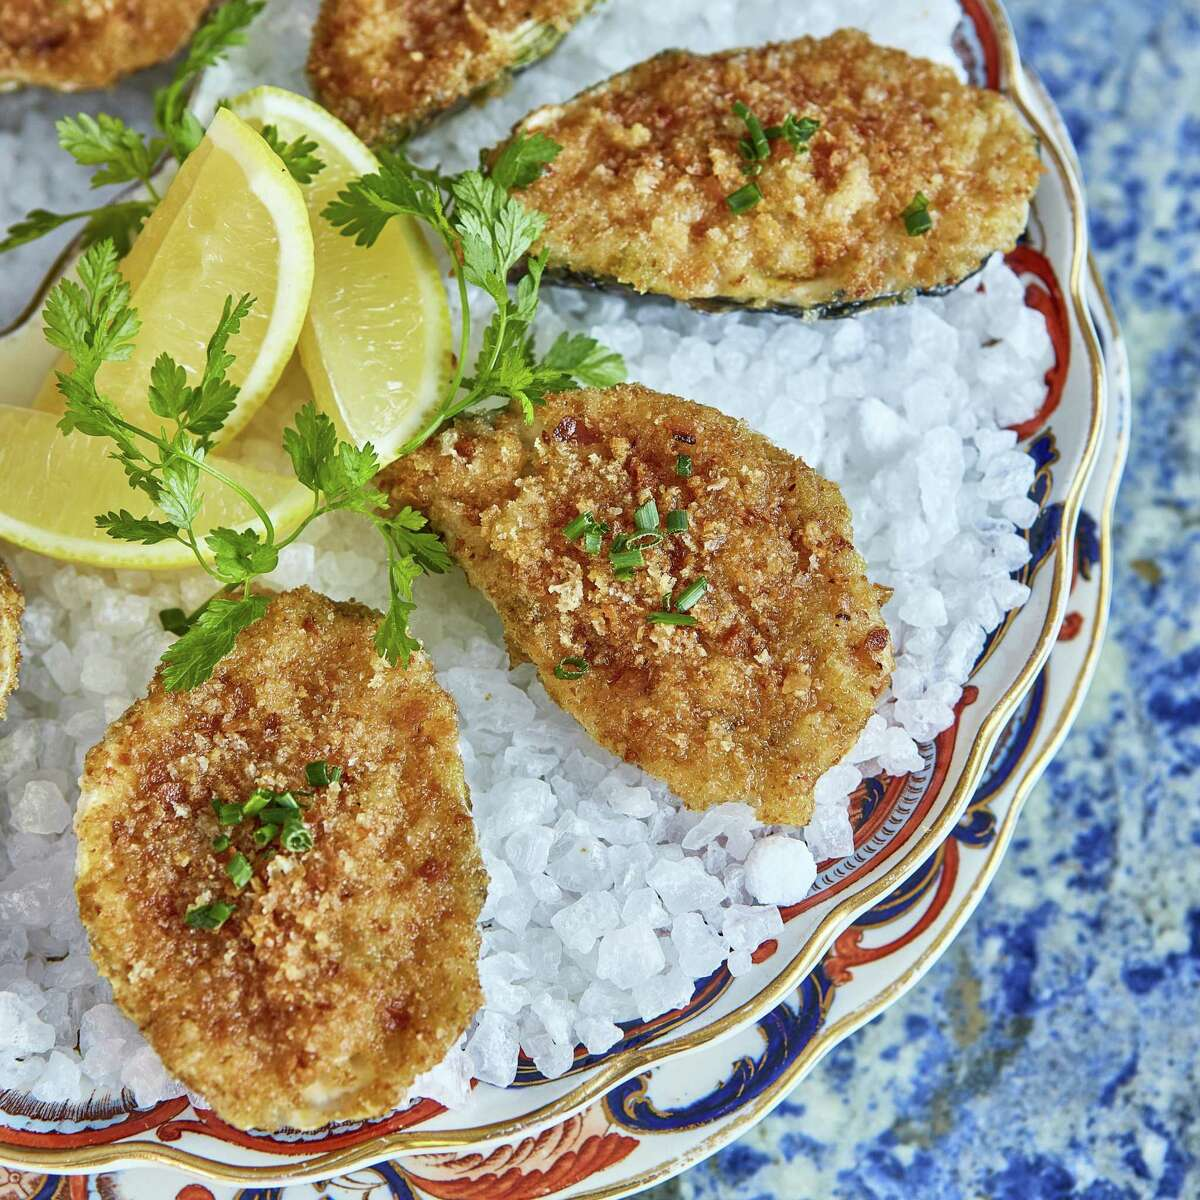 Fried oyster.